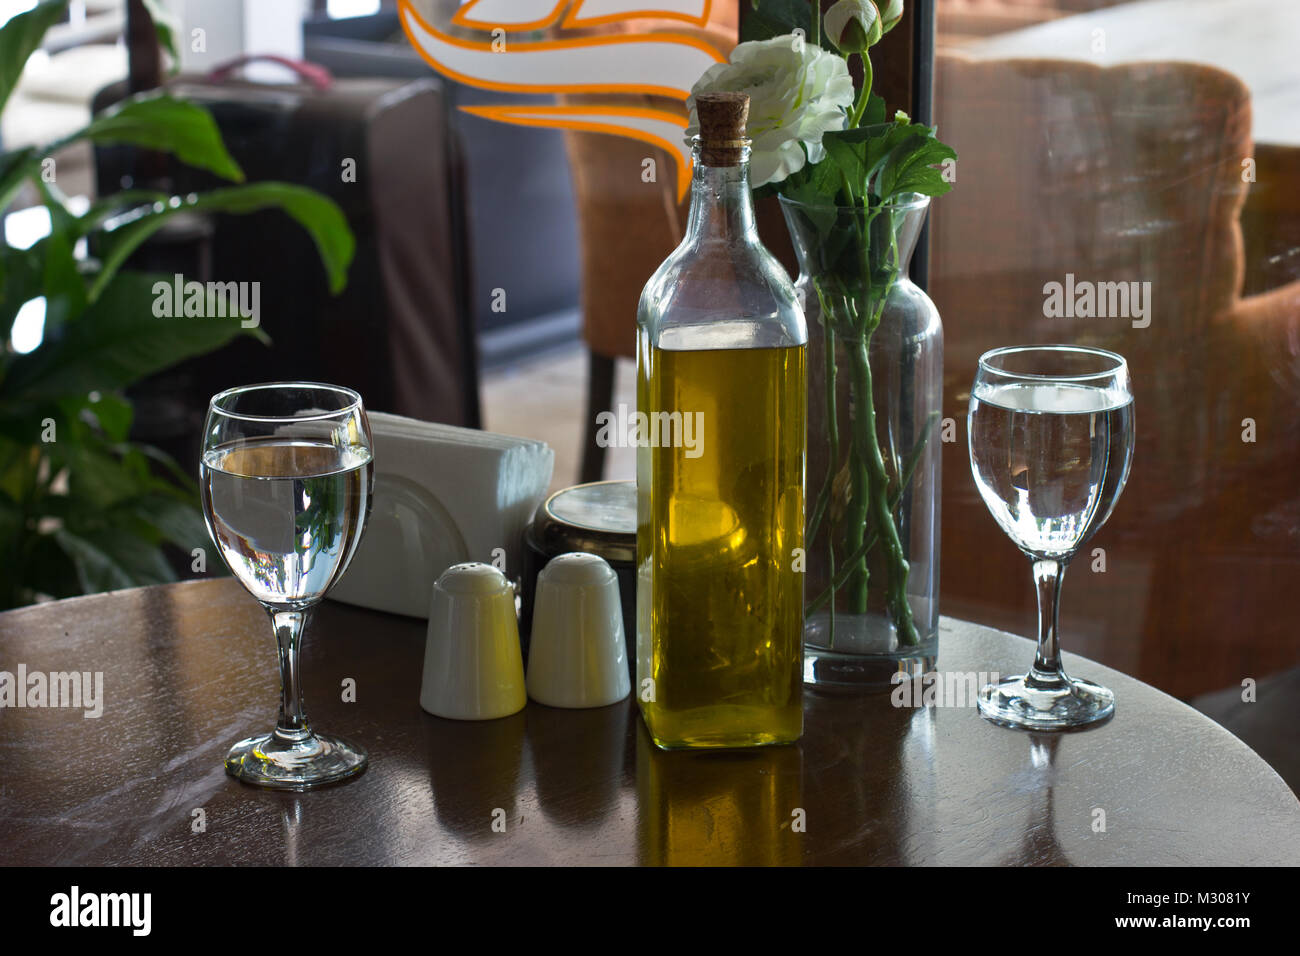 A bottle of olive oil on a table two glasses of water vase with a bottle of olive oil on a table two glasses of water vase with flowers the salt cellar reviewsmspy